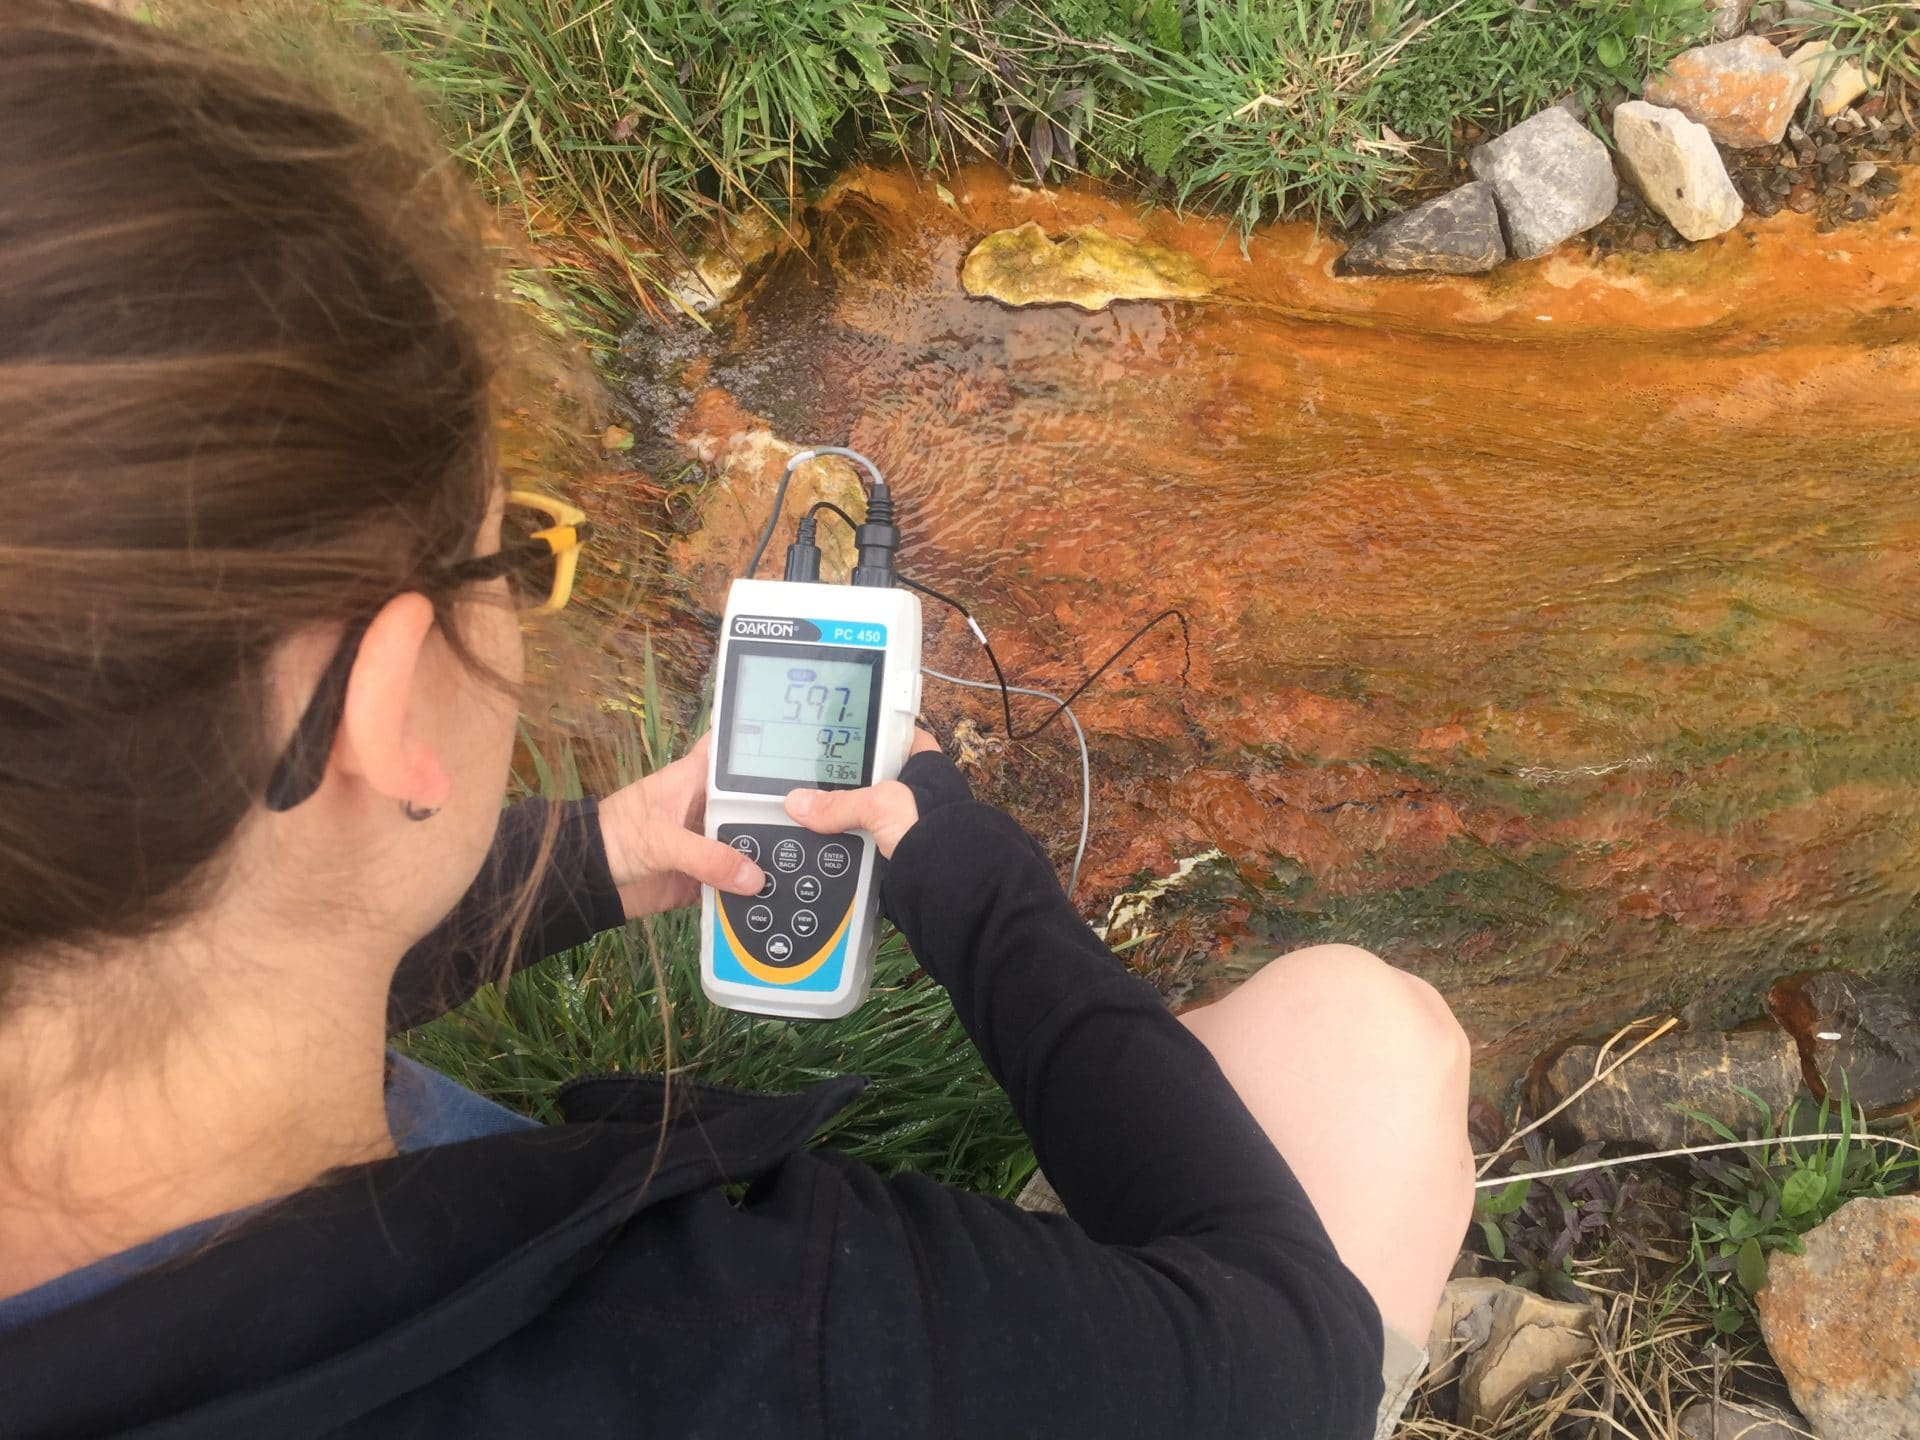 water quality monitoring using a sensor on a small stream impaired by acid mine drainage